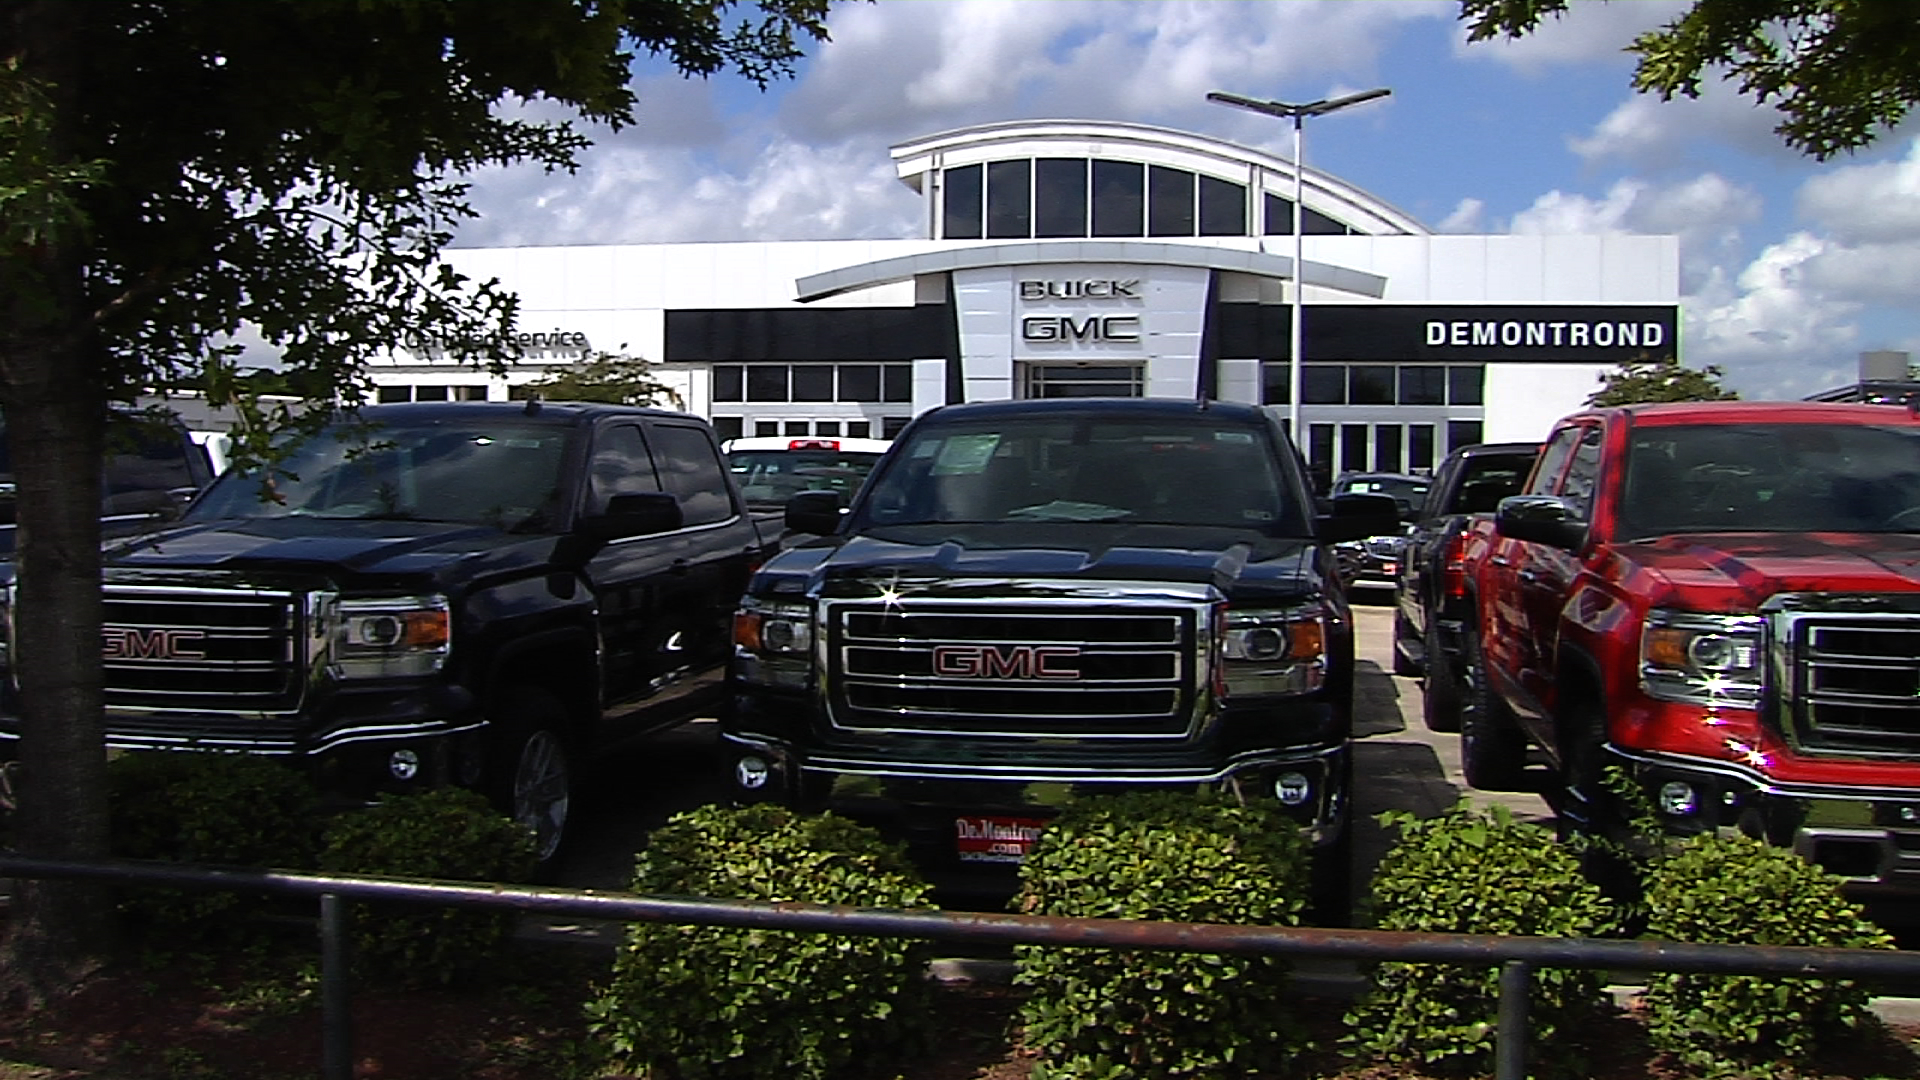 Demontrond Auto Group In Houston Tx 77090 Chamberofcommerce Com